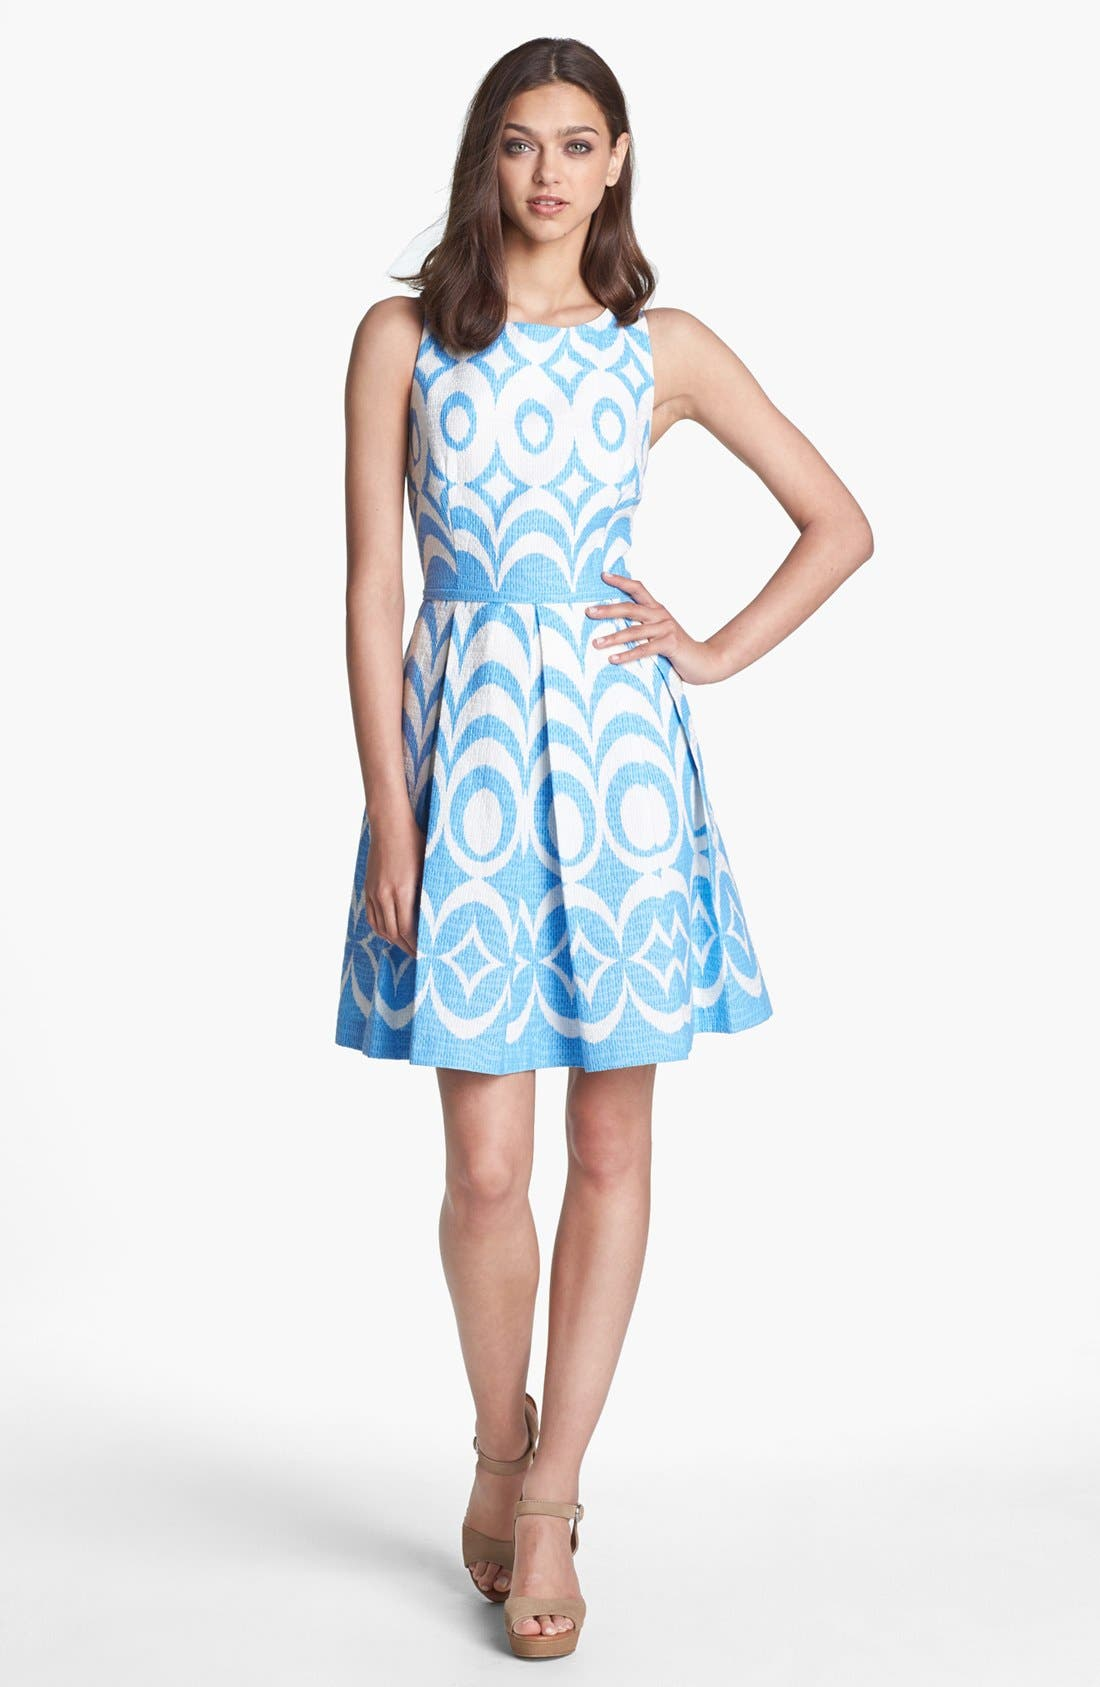 Main Image - Taylor Dresses Print Sleeveless Fit & Flare Dress